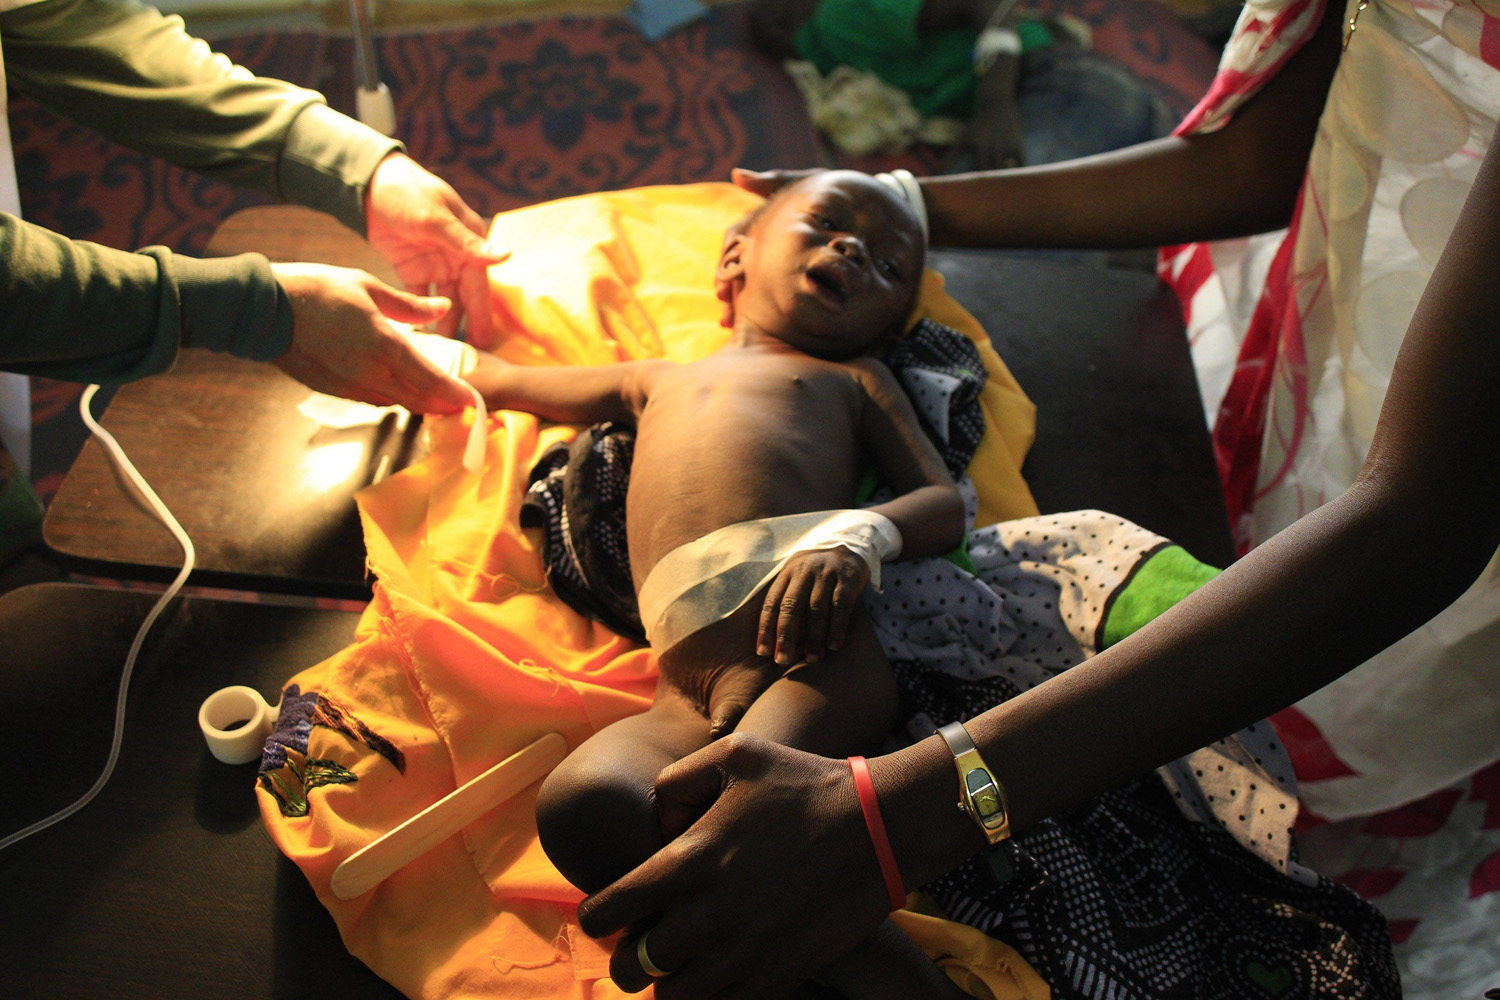 Jan. 7, 2014. Medical workers tend to a sick child from a displaced family at United Nations hospital at Tomping camp, where some 15,000 displaced people who fled their homes are sheltered by the UN near South Sudan's capital Juba.